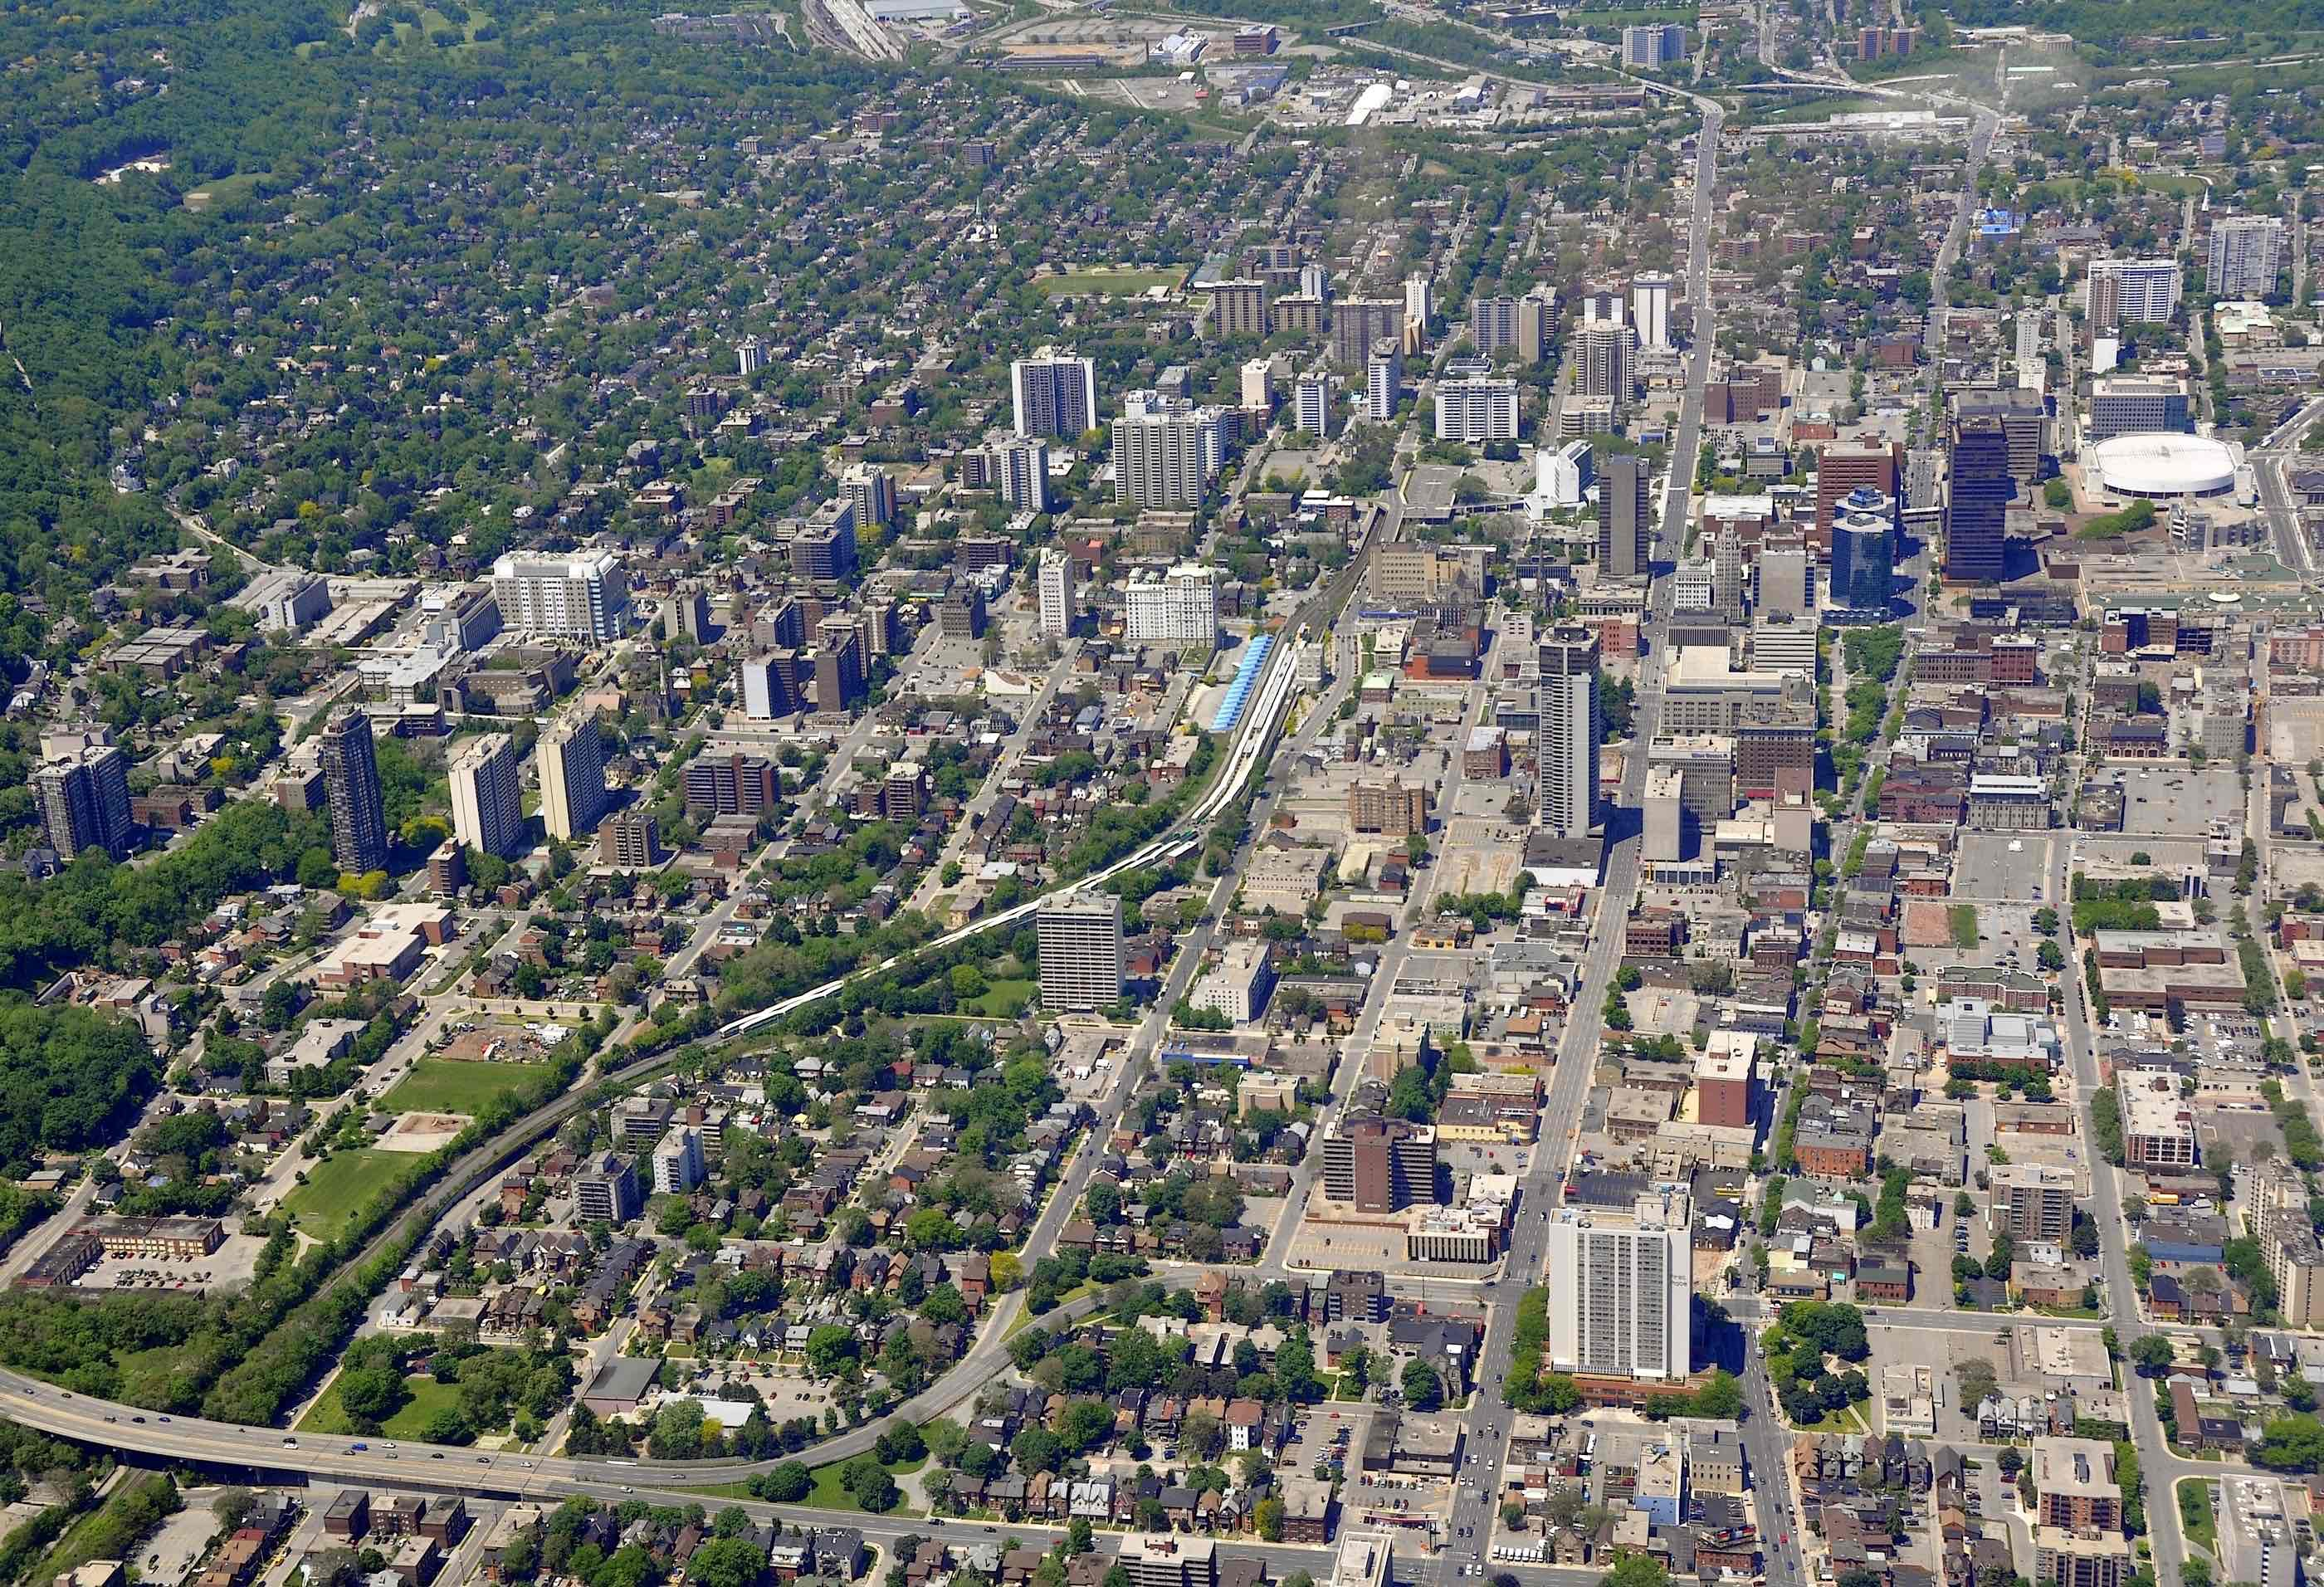 Downtown Hamilton in Ontario, Canada